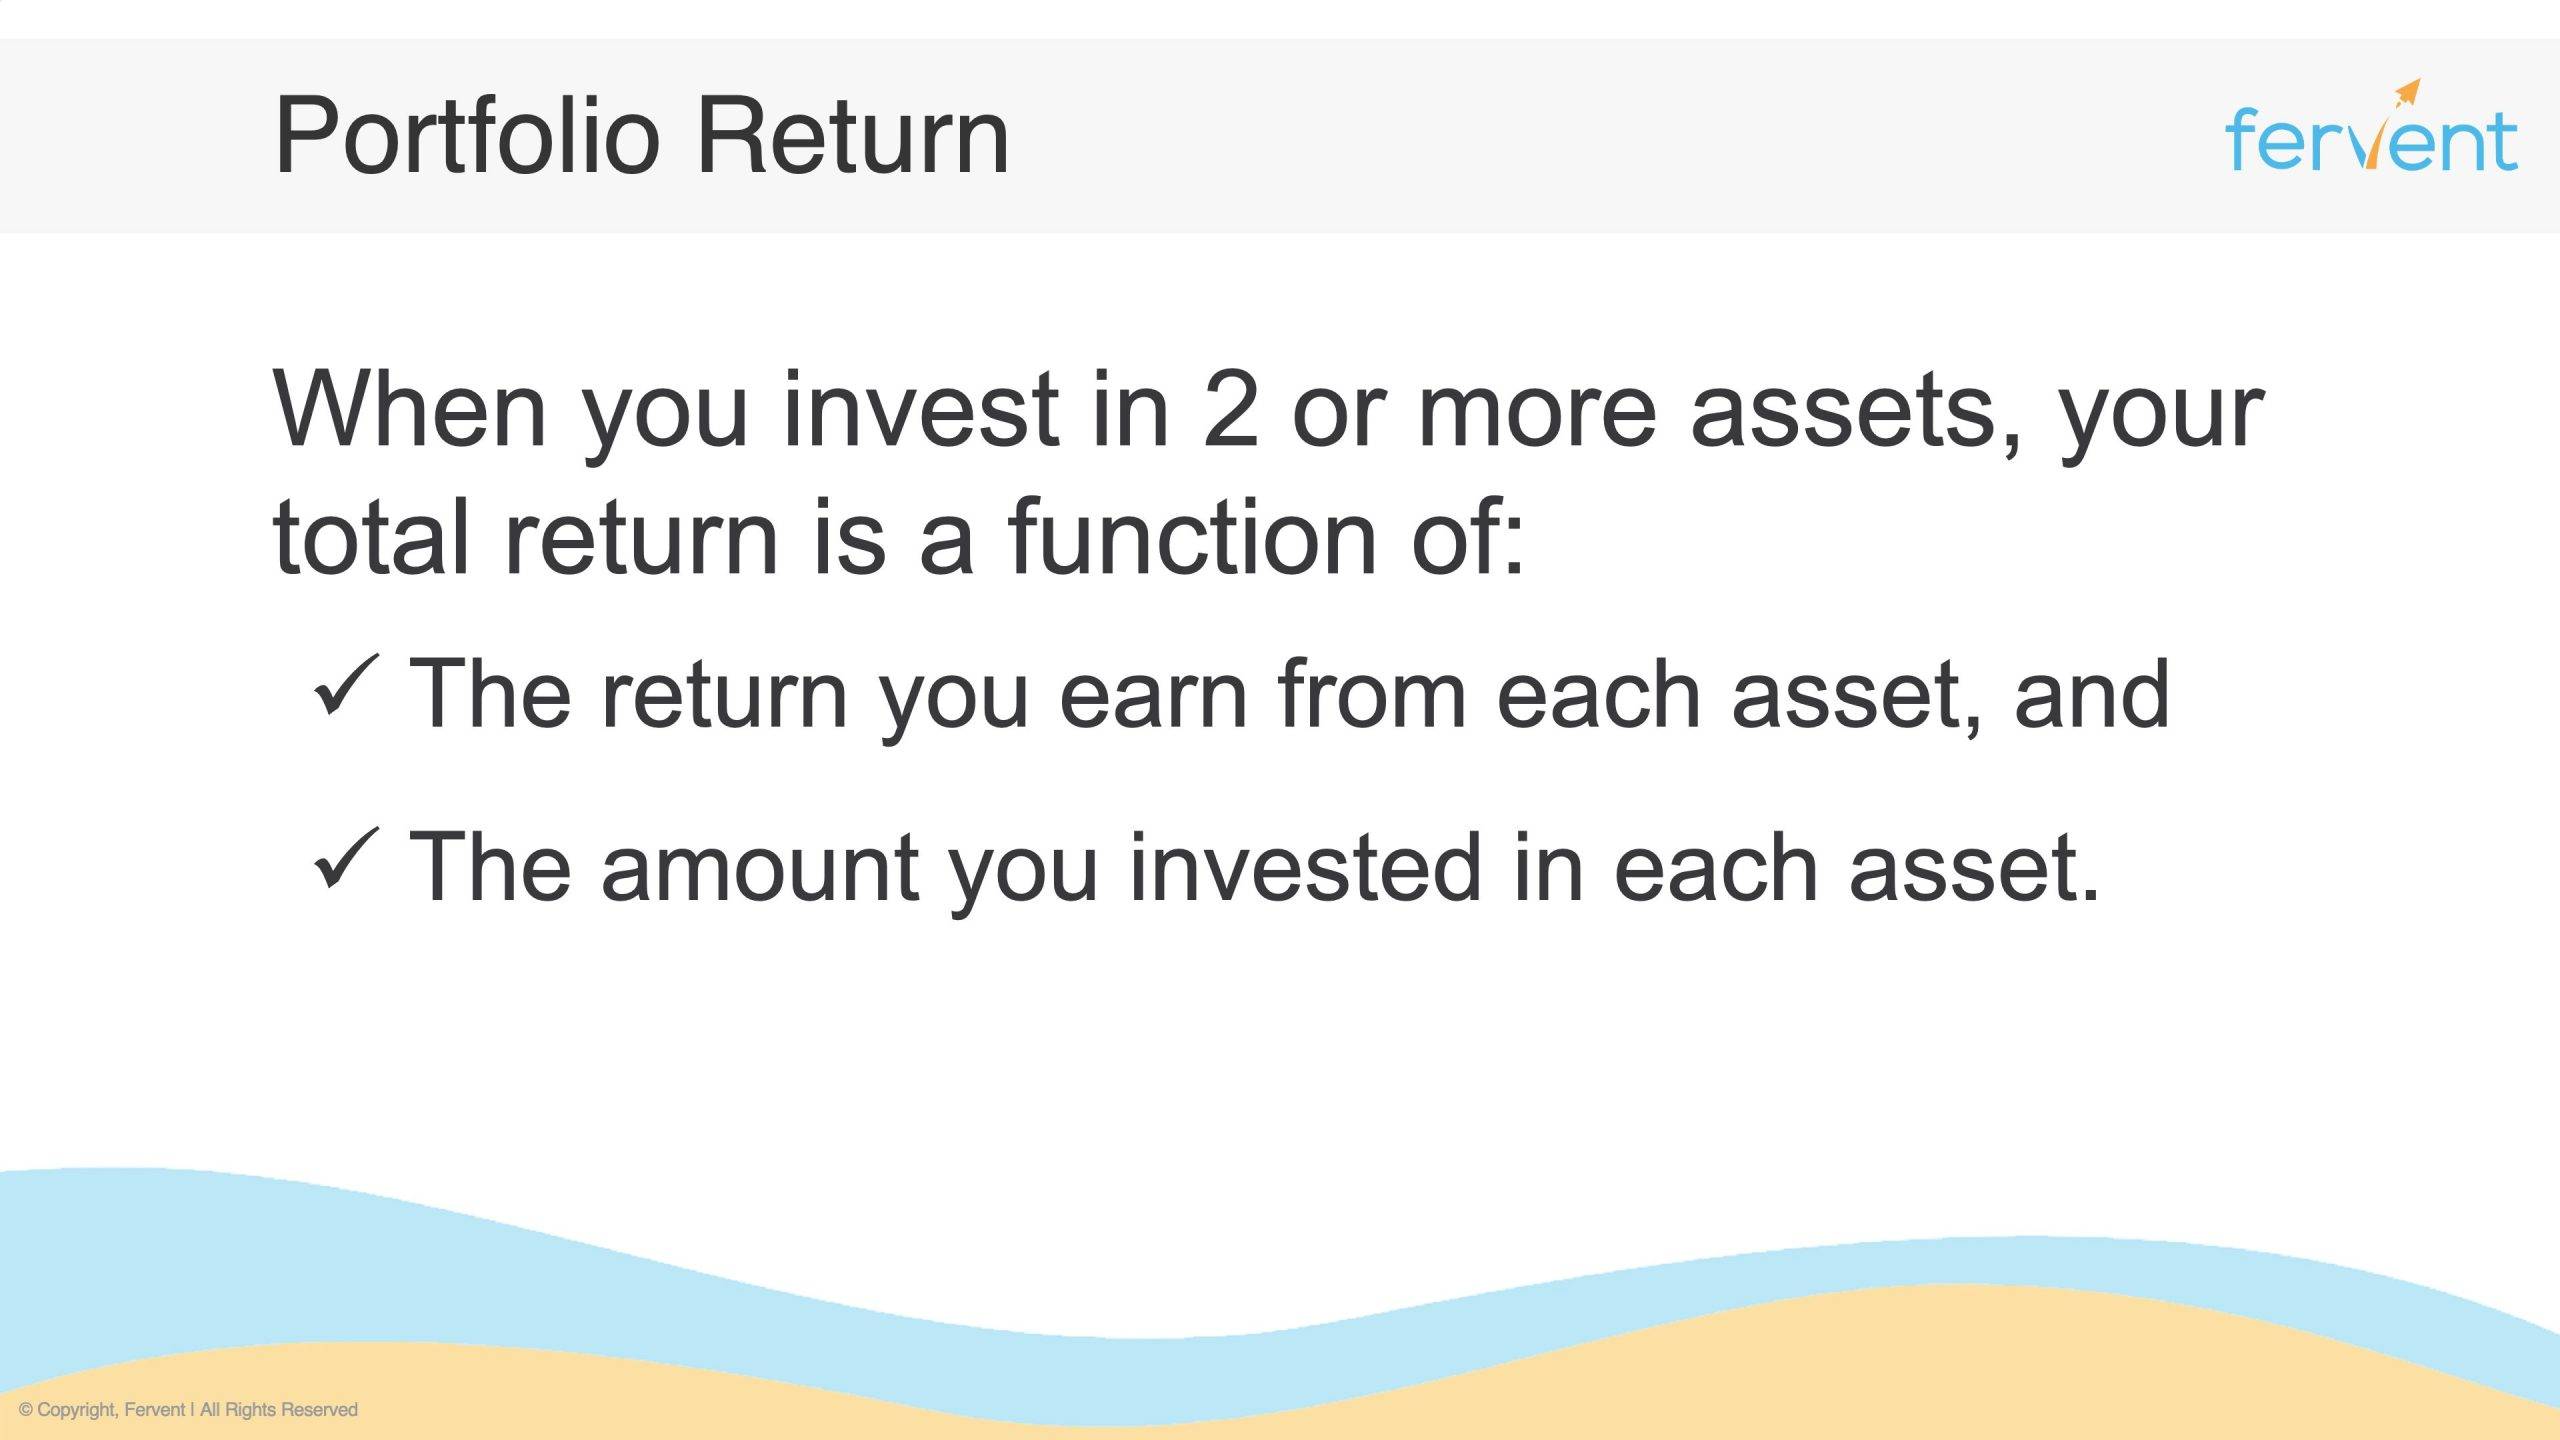 Slide showcasing how to calculate portfolio returns by displaying the 2 key attributes